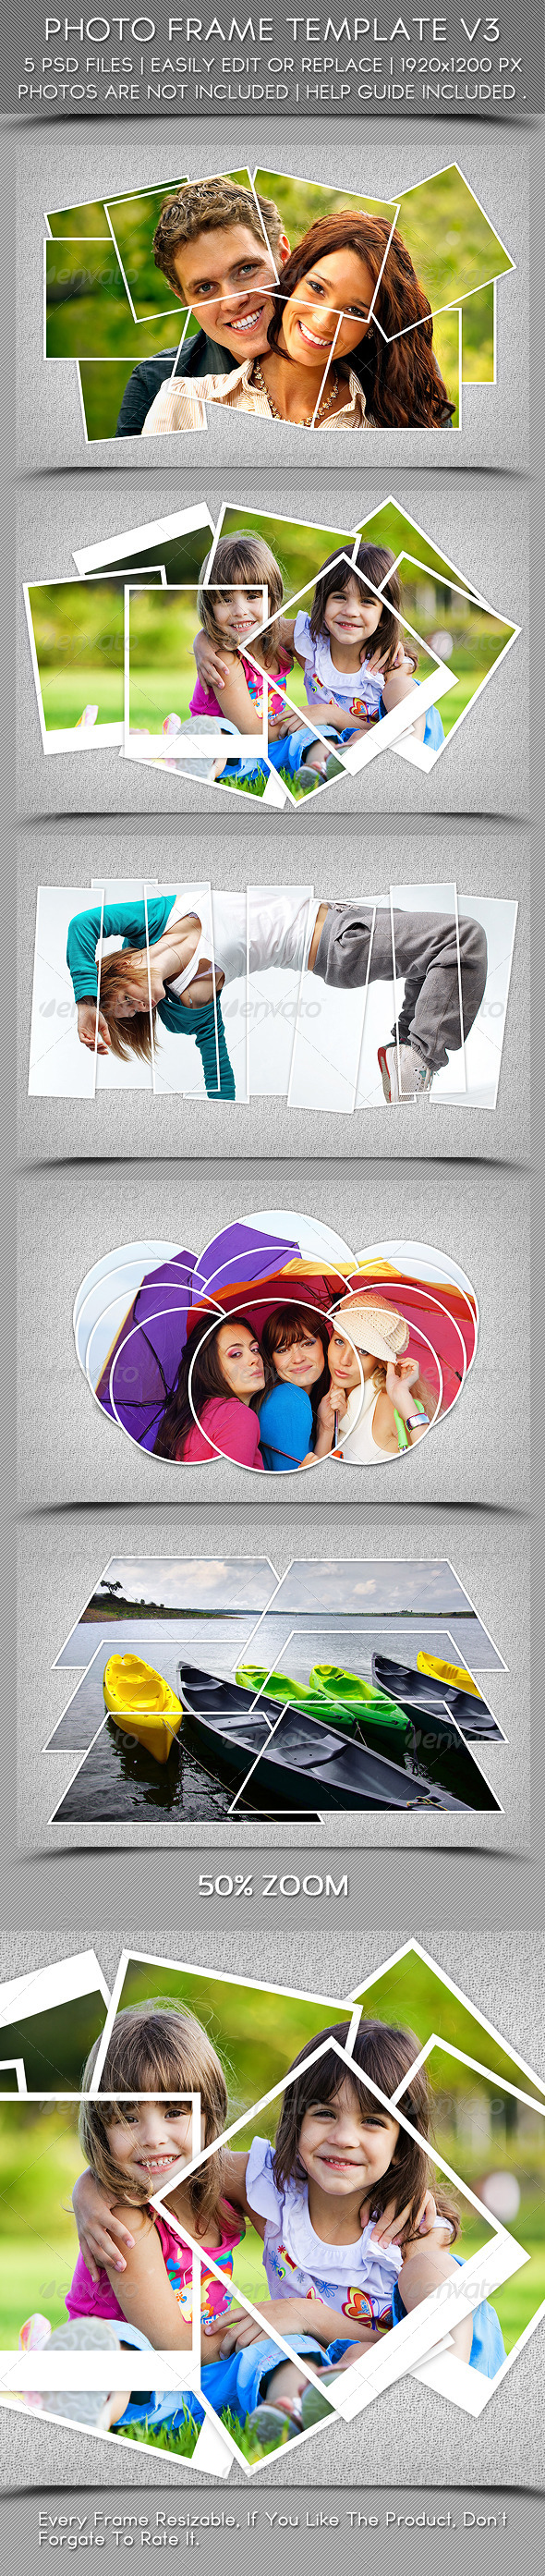 Photo Frame Template V3 - Photo Templates Graphics